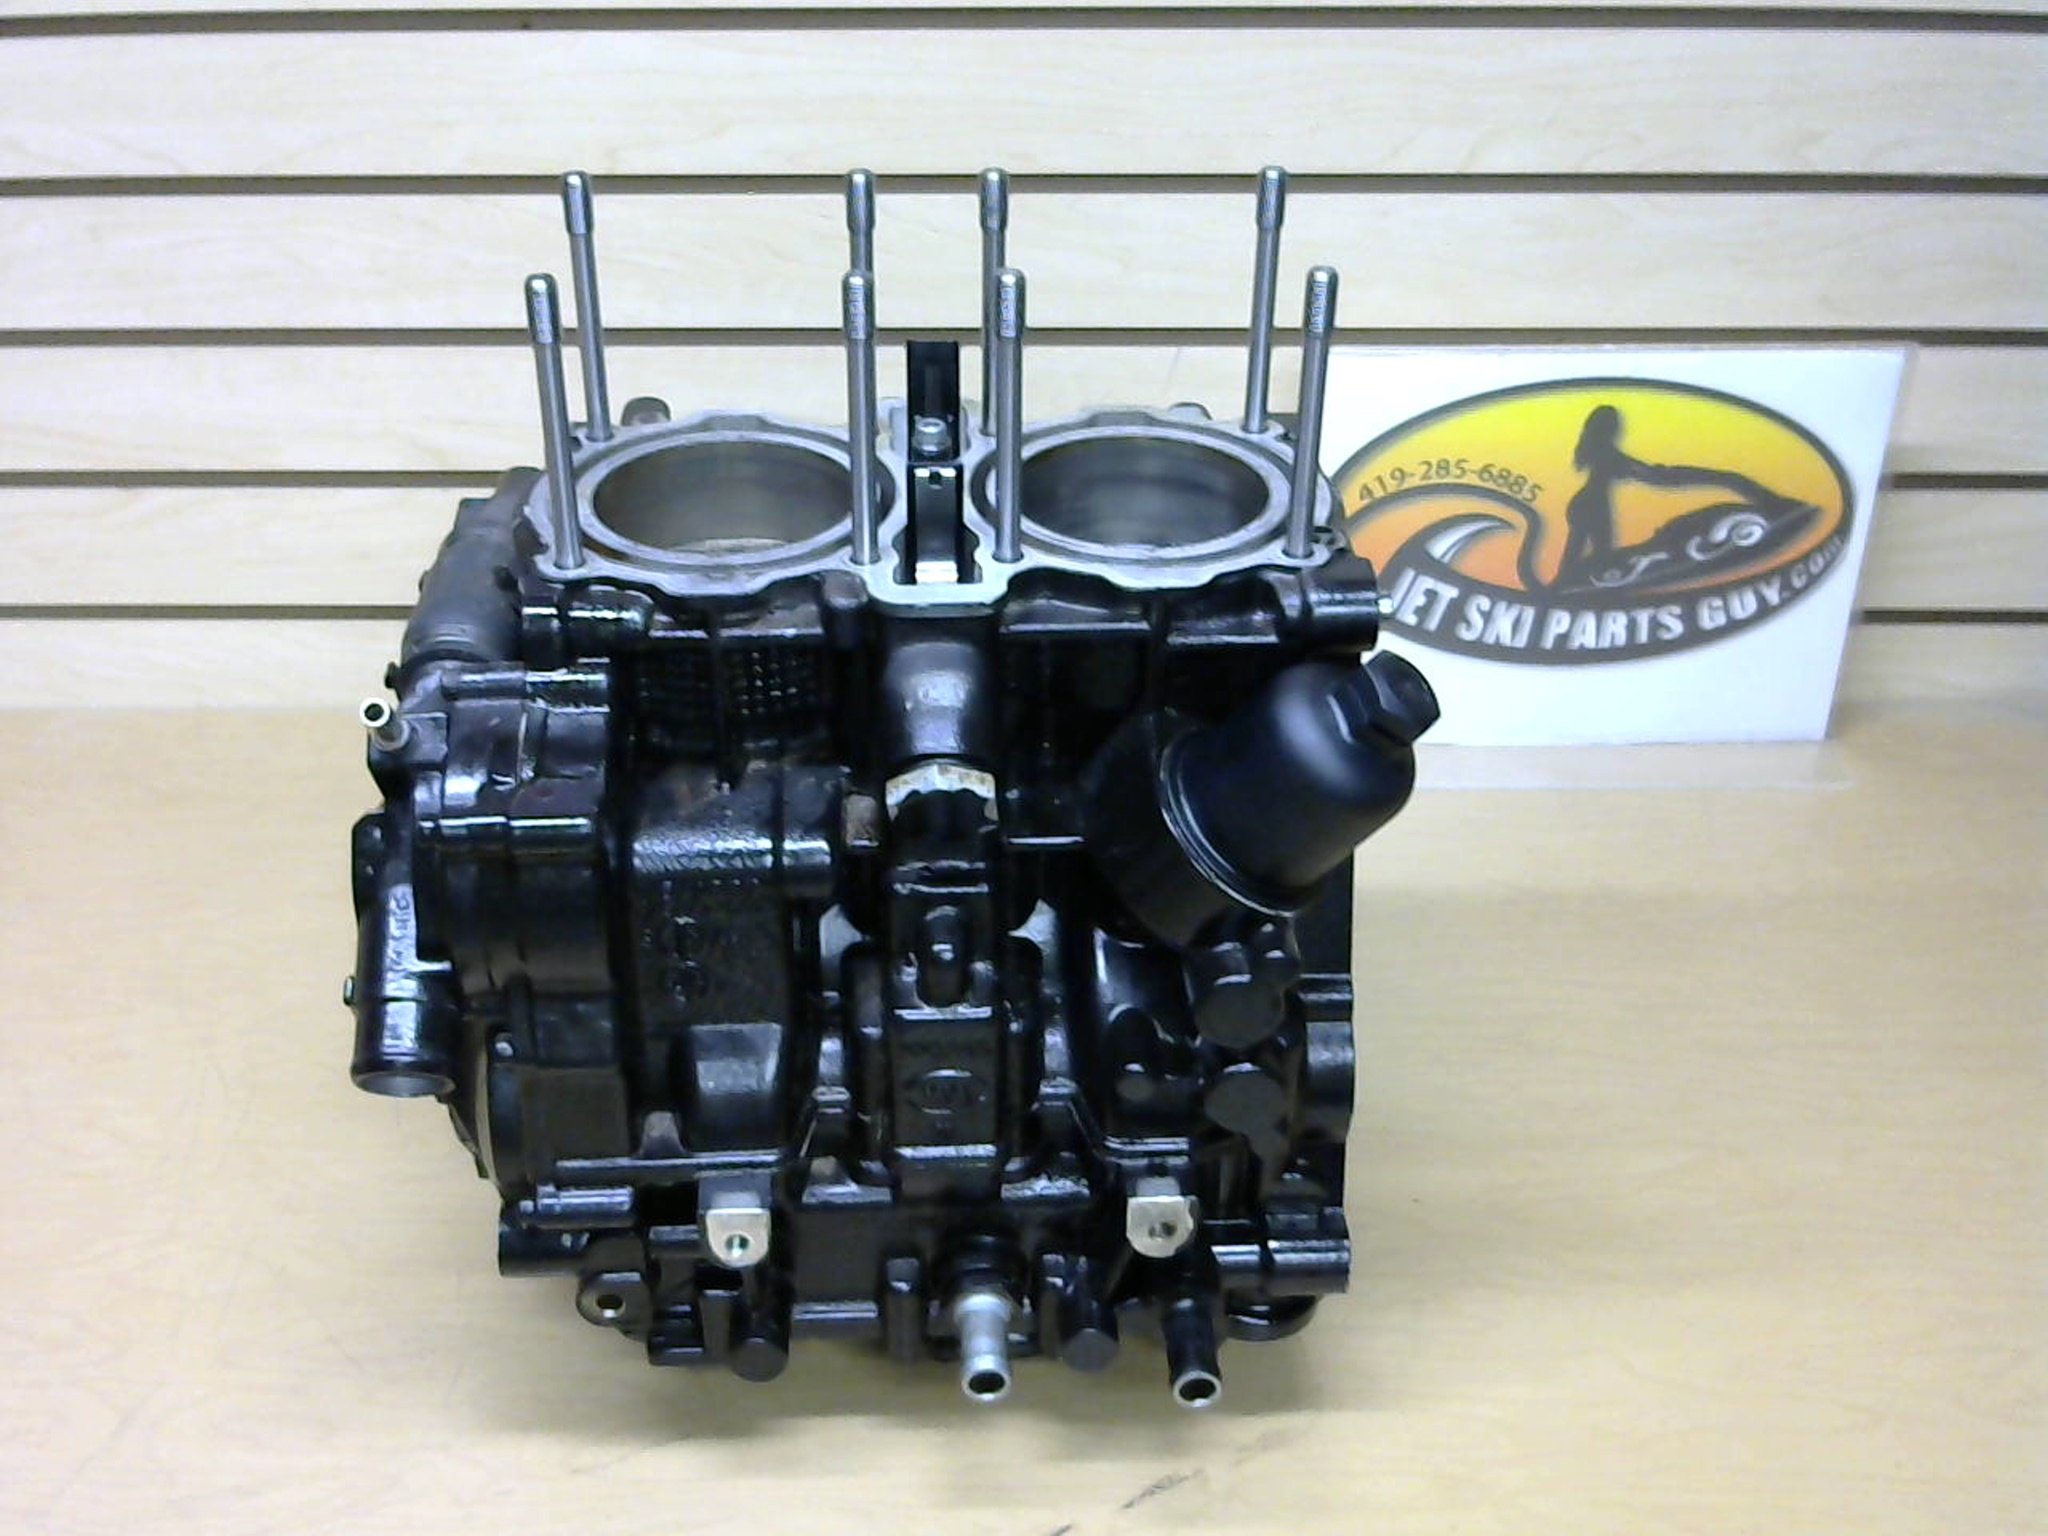 2004 polaris msx 110 turbo engine used jetski parts. Black Bedroom Furniture Sets. Home Design Ideas